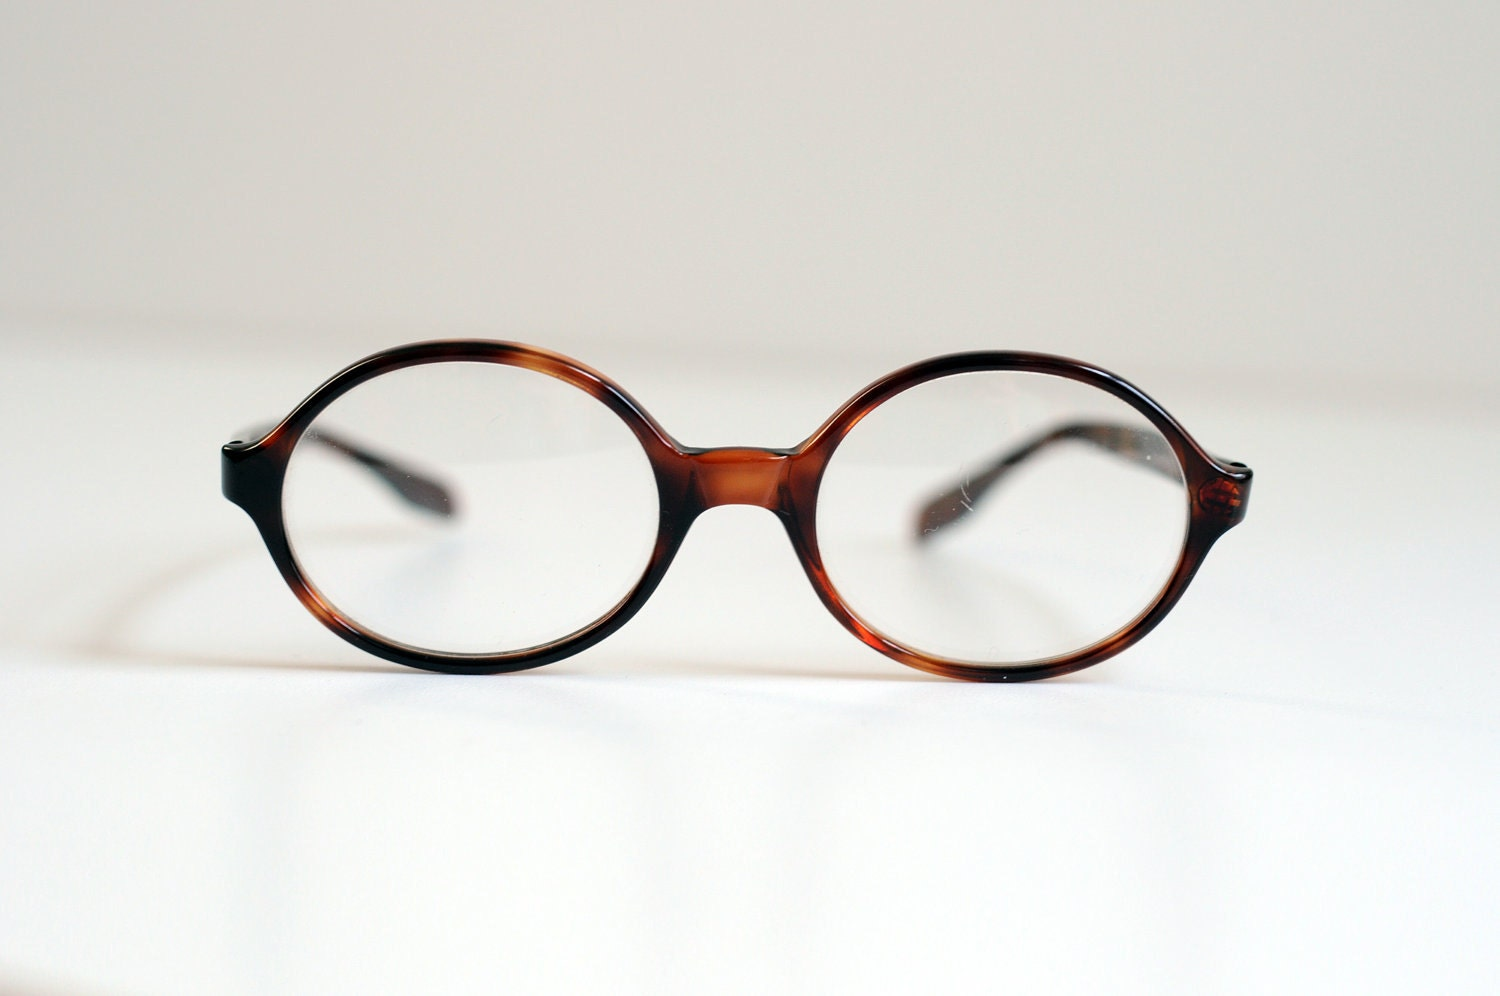 Eyeglass Frames Oval : oval glasses brown tortoise shell round eyeglasses